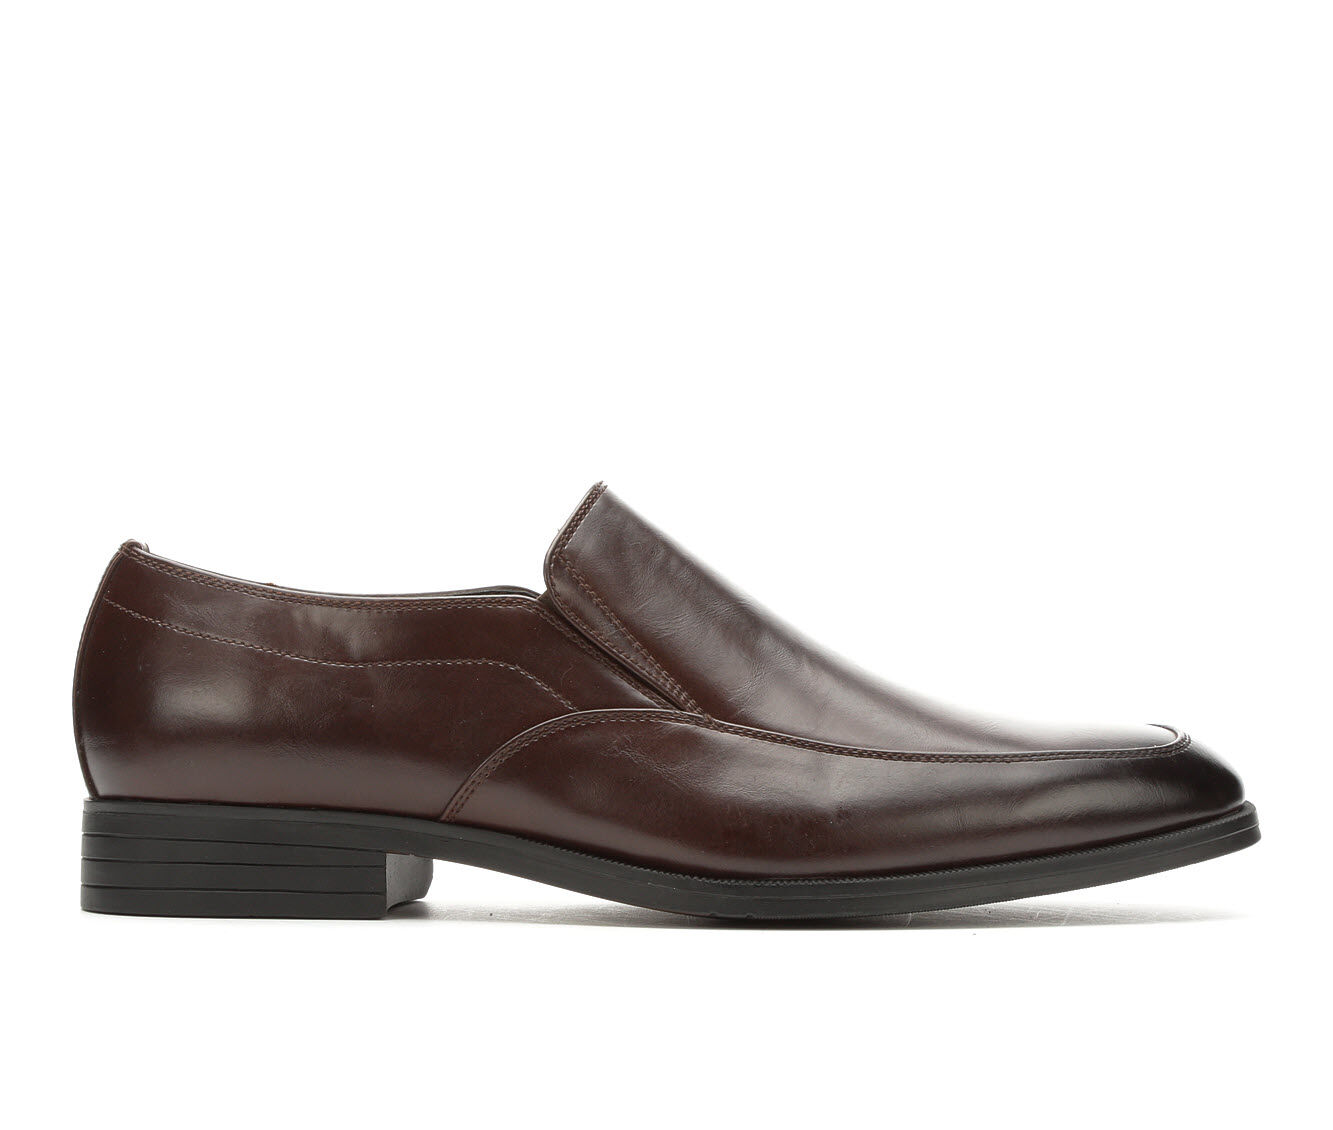 a huge selection of Men's Freeman Clifford Dress Shoes Dark Brown